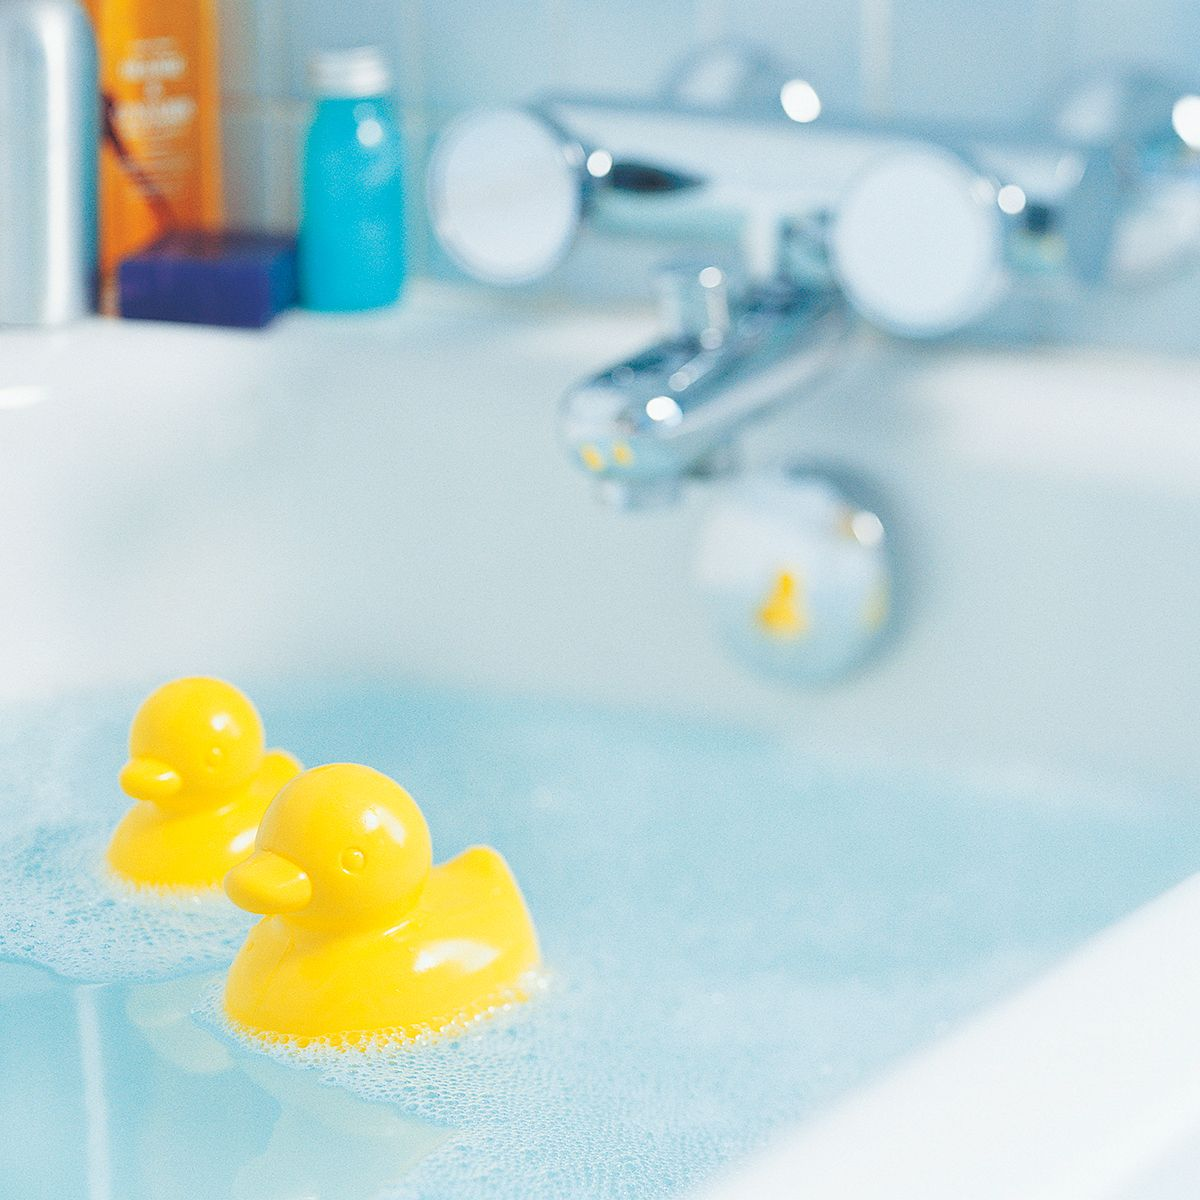 Bathroom cleaning tips - cleaning your bathroom